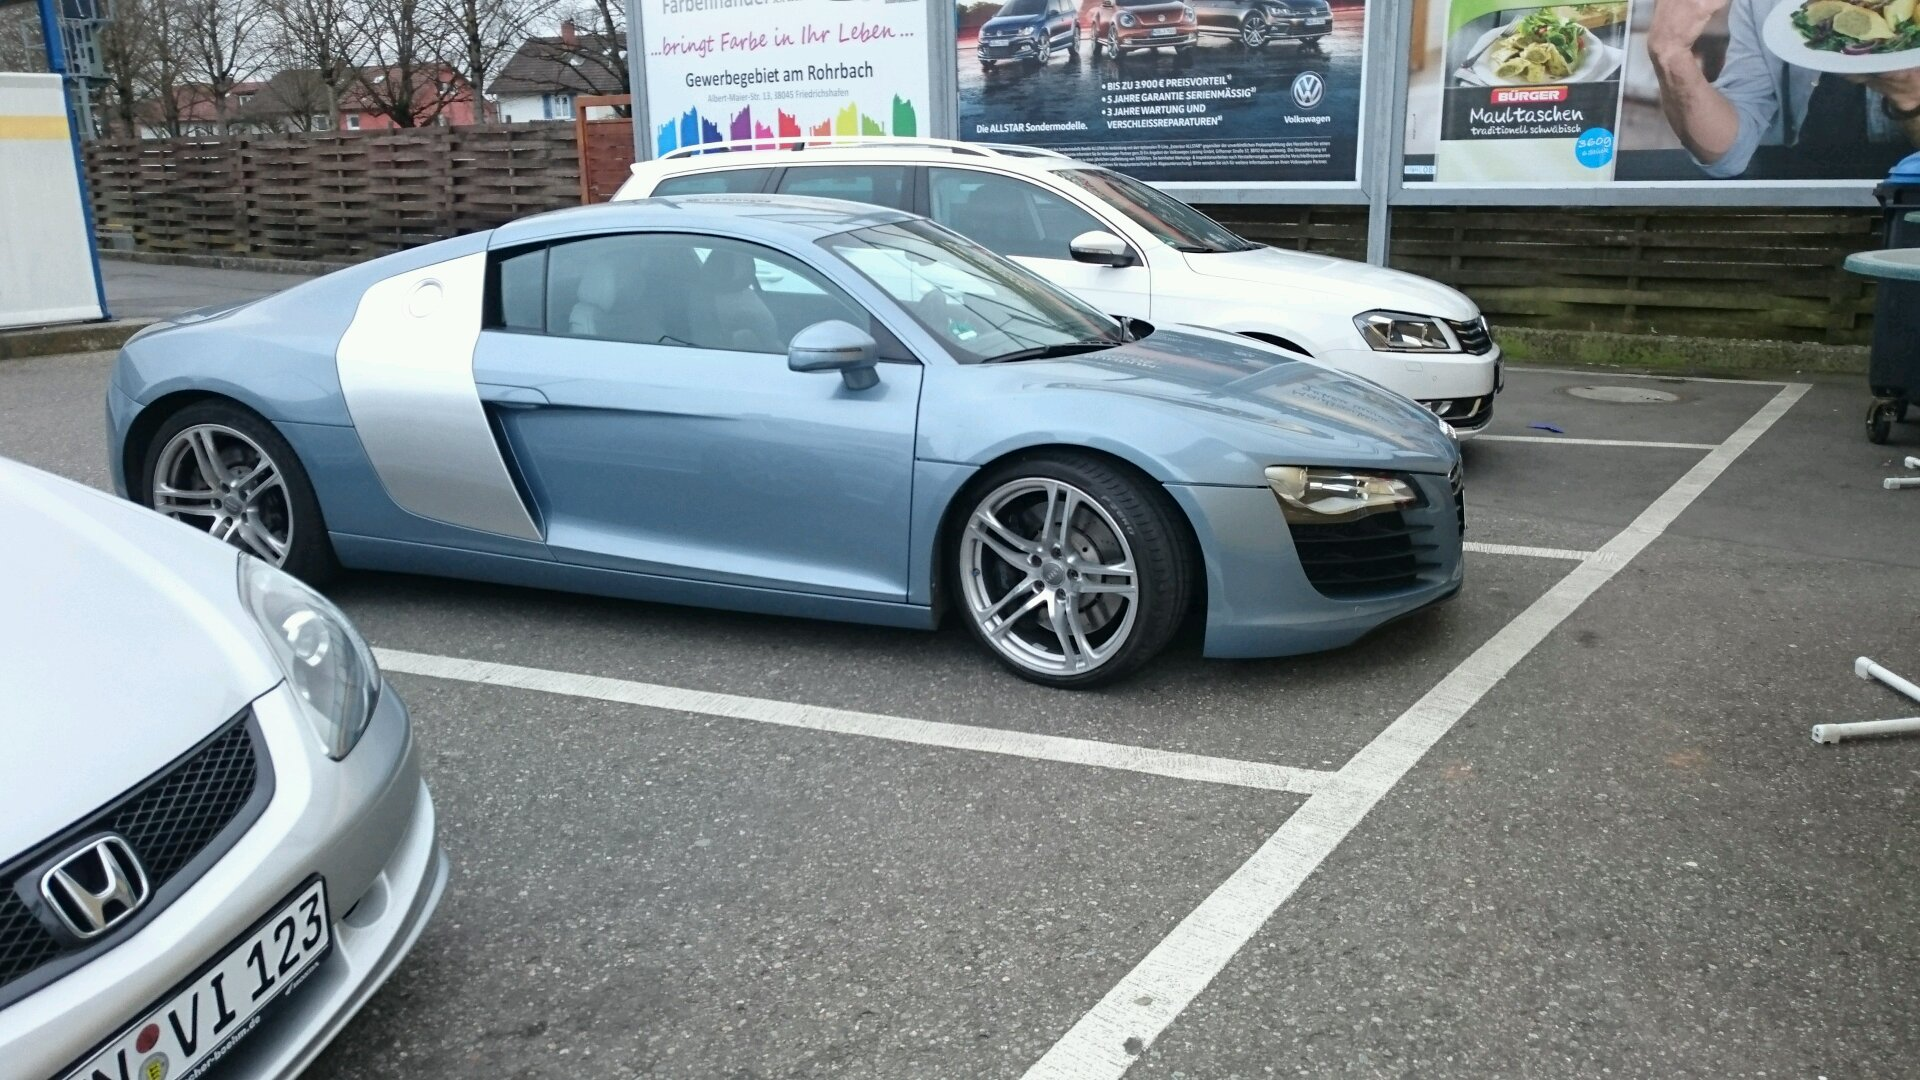 Spotted this Audi R8 today. (By the way ugly color in my opinion)